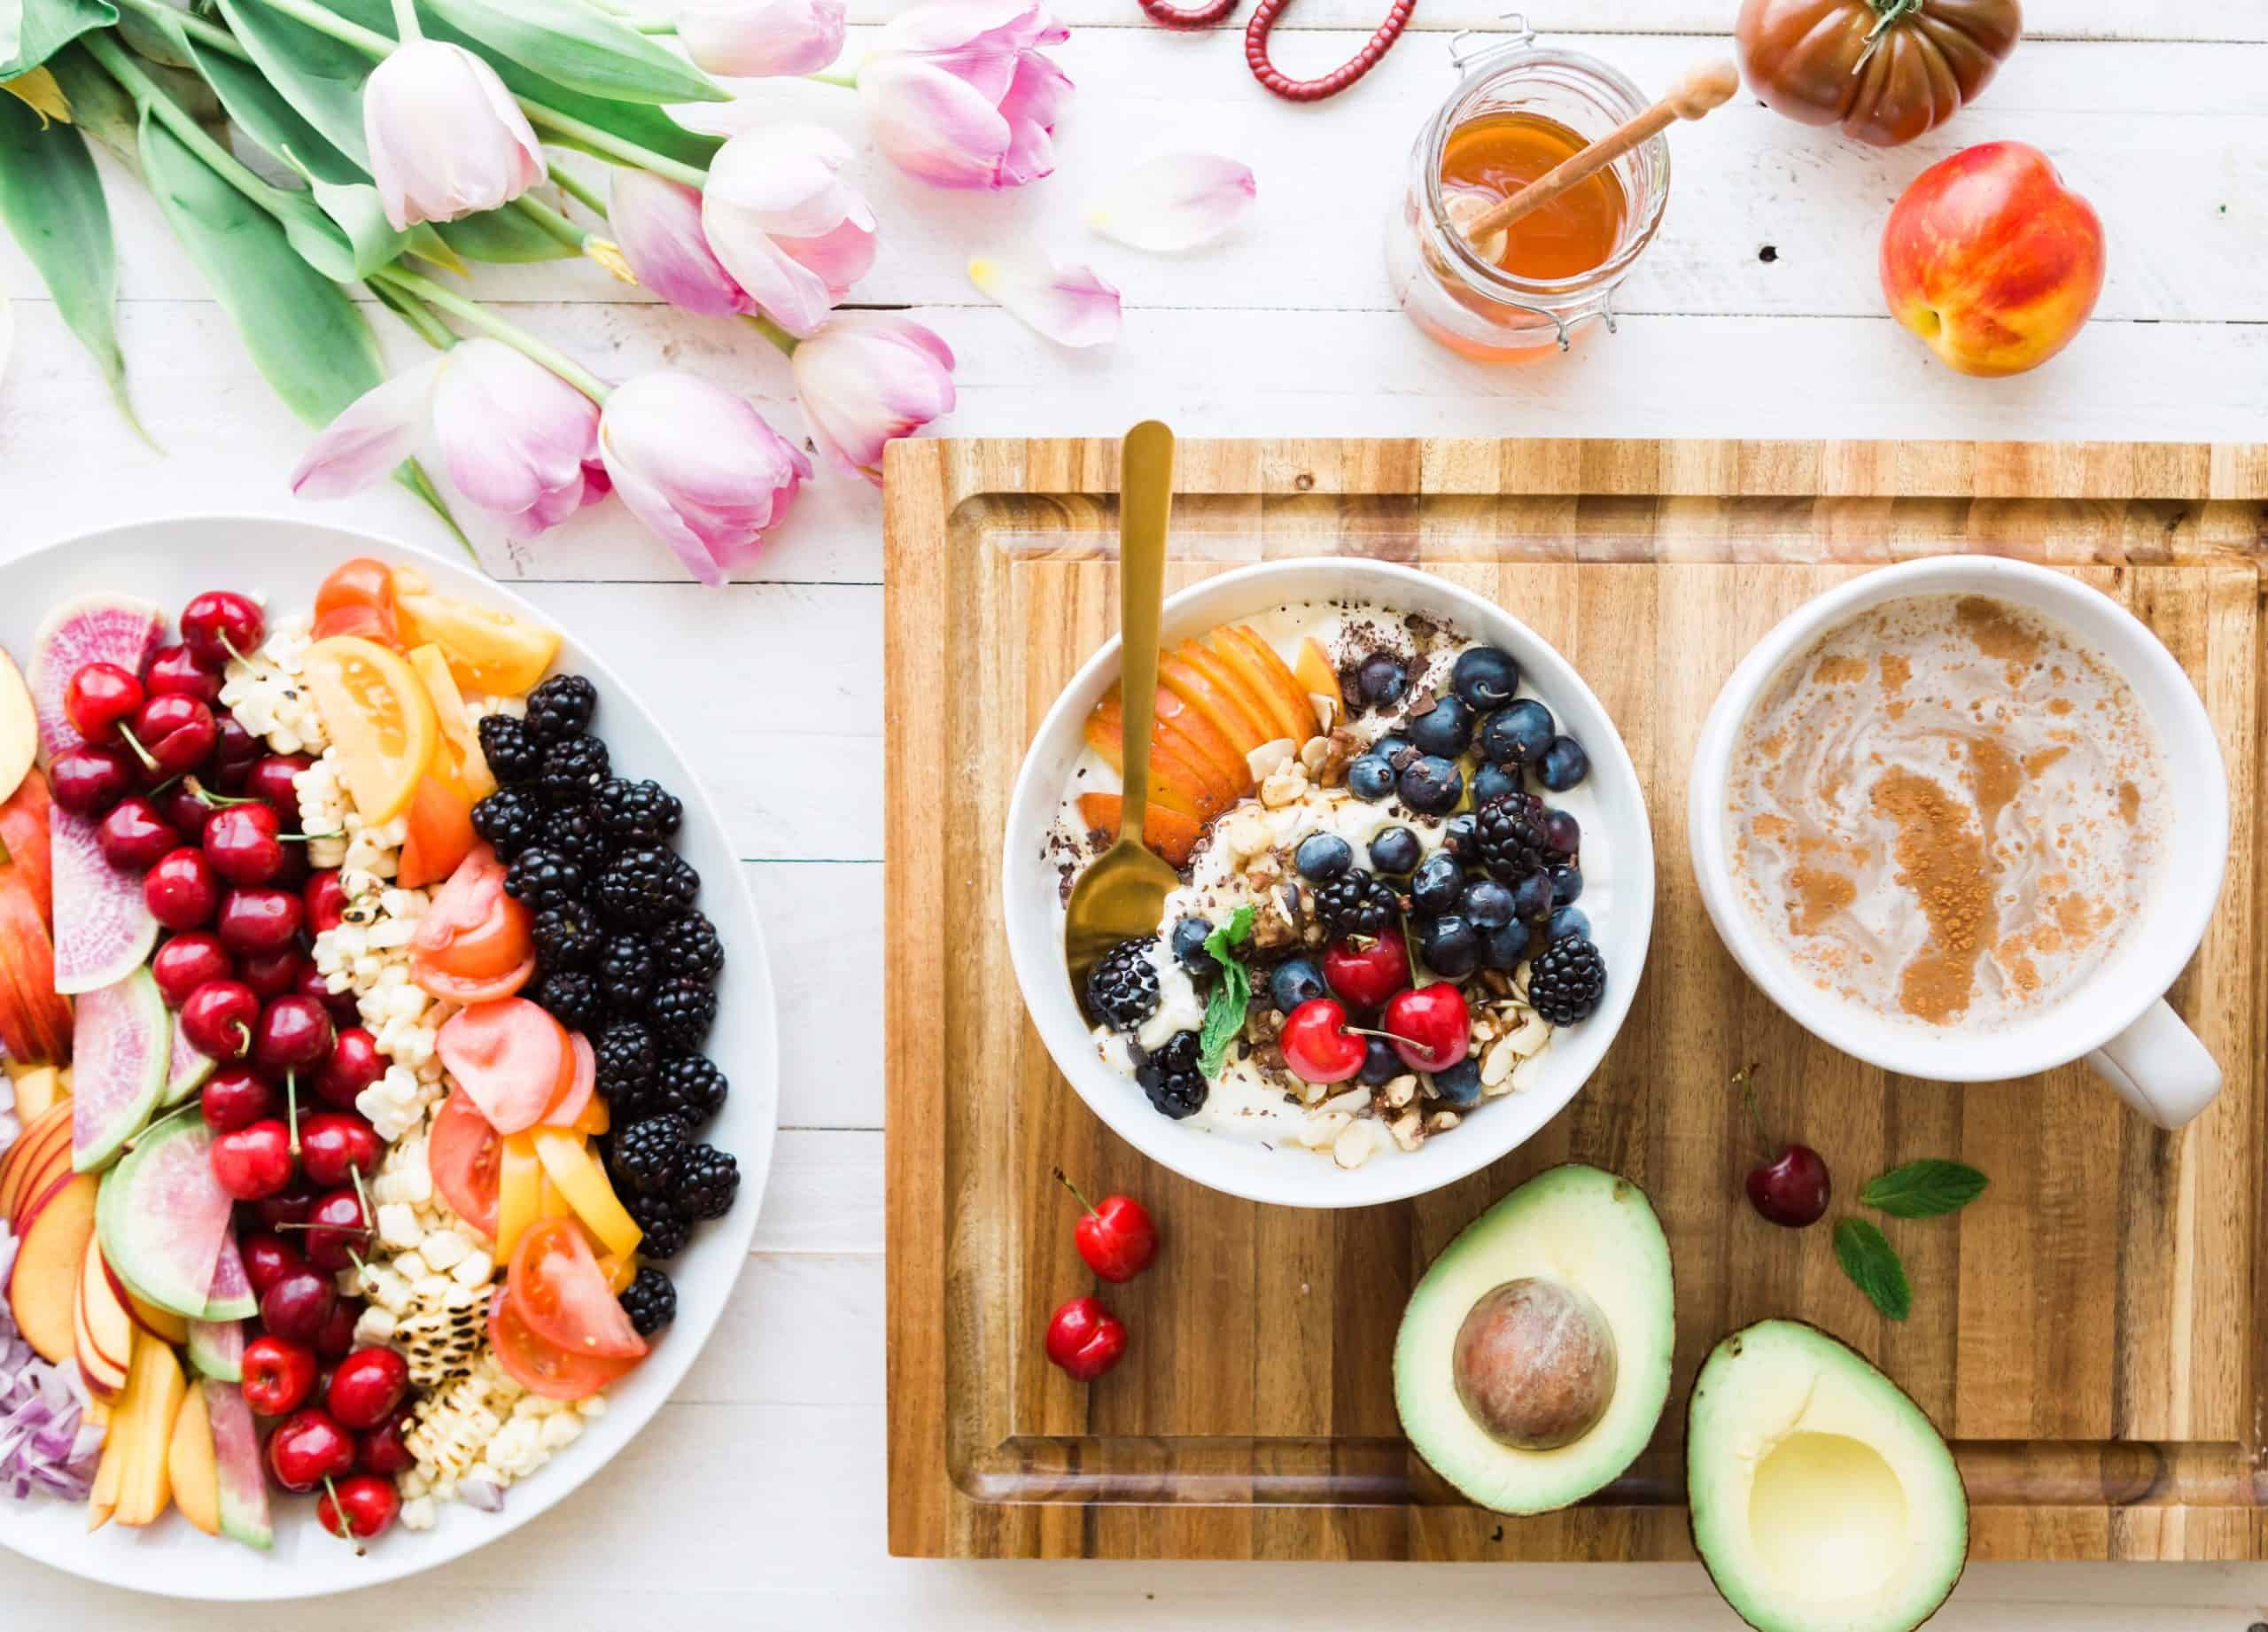 15 Most Delicious and Healthy Eating Spots in Toronto